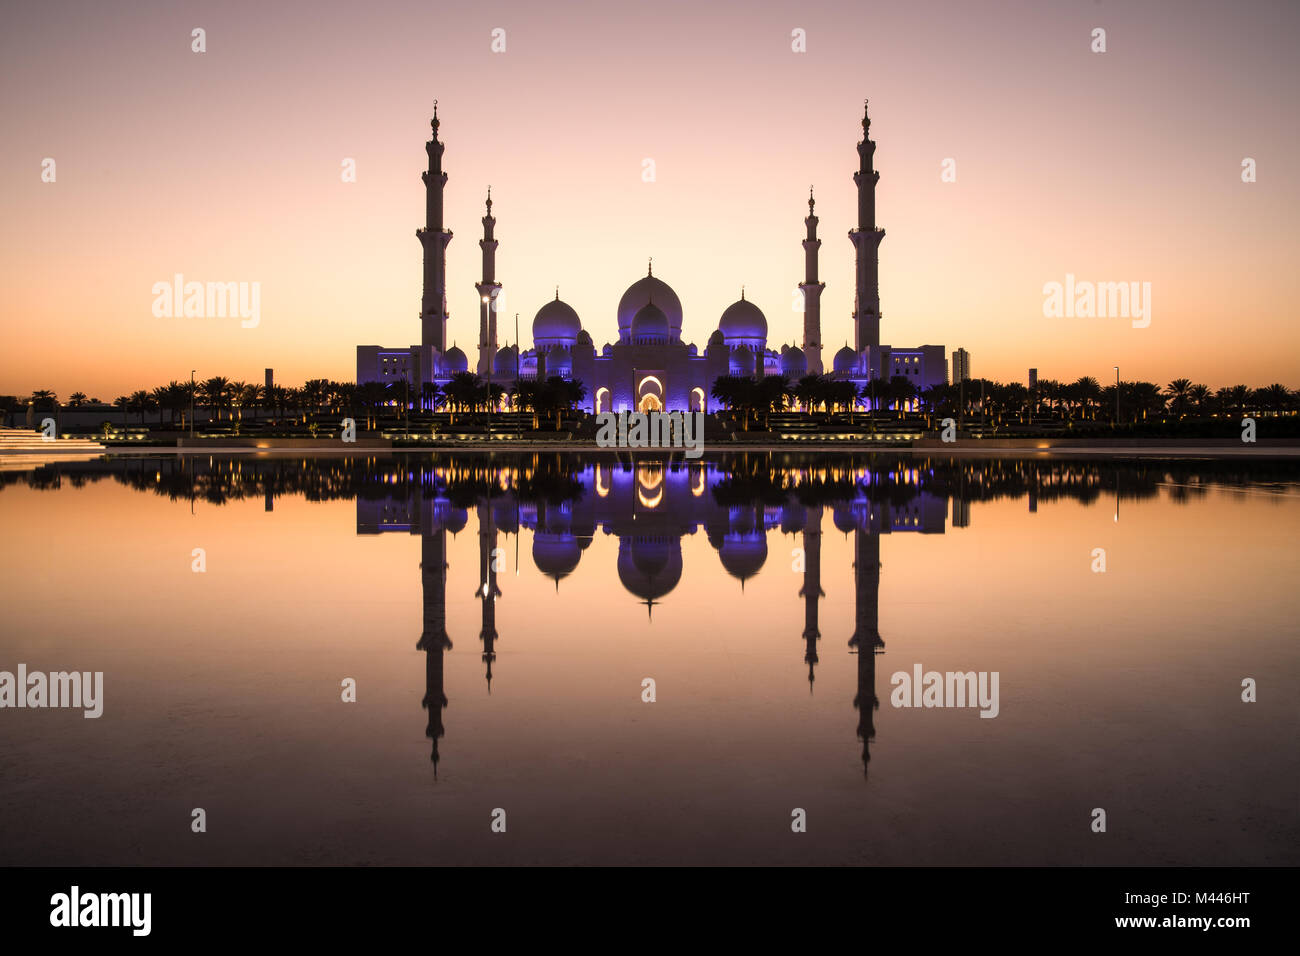 Sheikh Zayed Grand Mosque and it's perfect reflection in a water pool during dusk after sunset. Abu Dhabi, UAE. - Stock Image